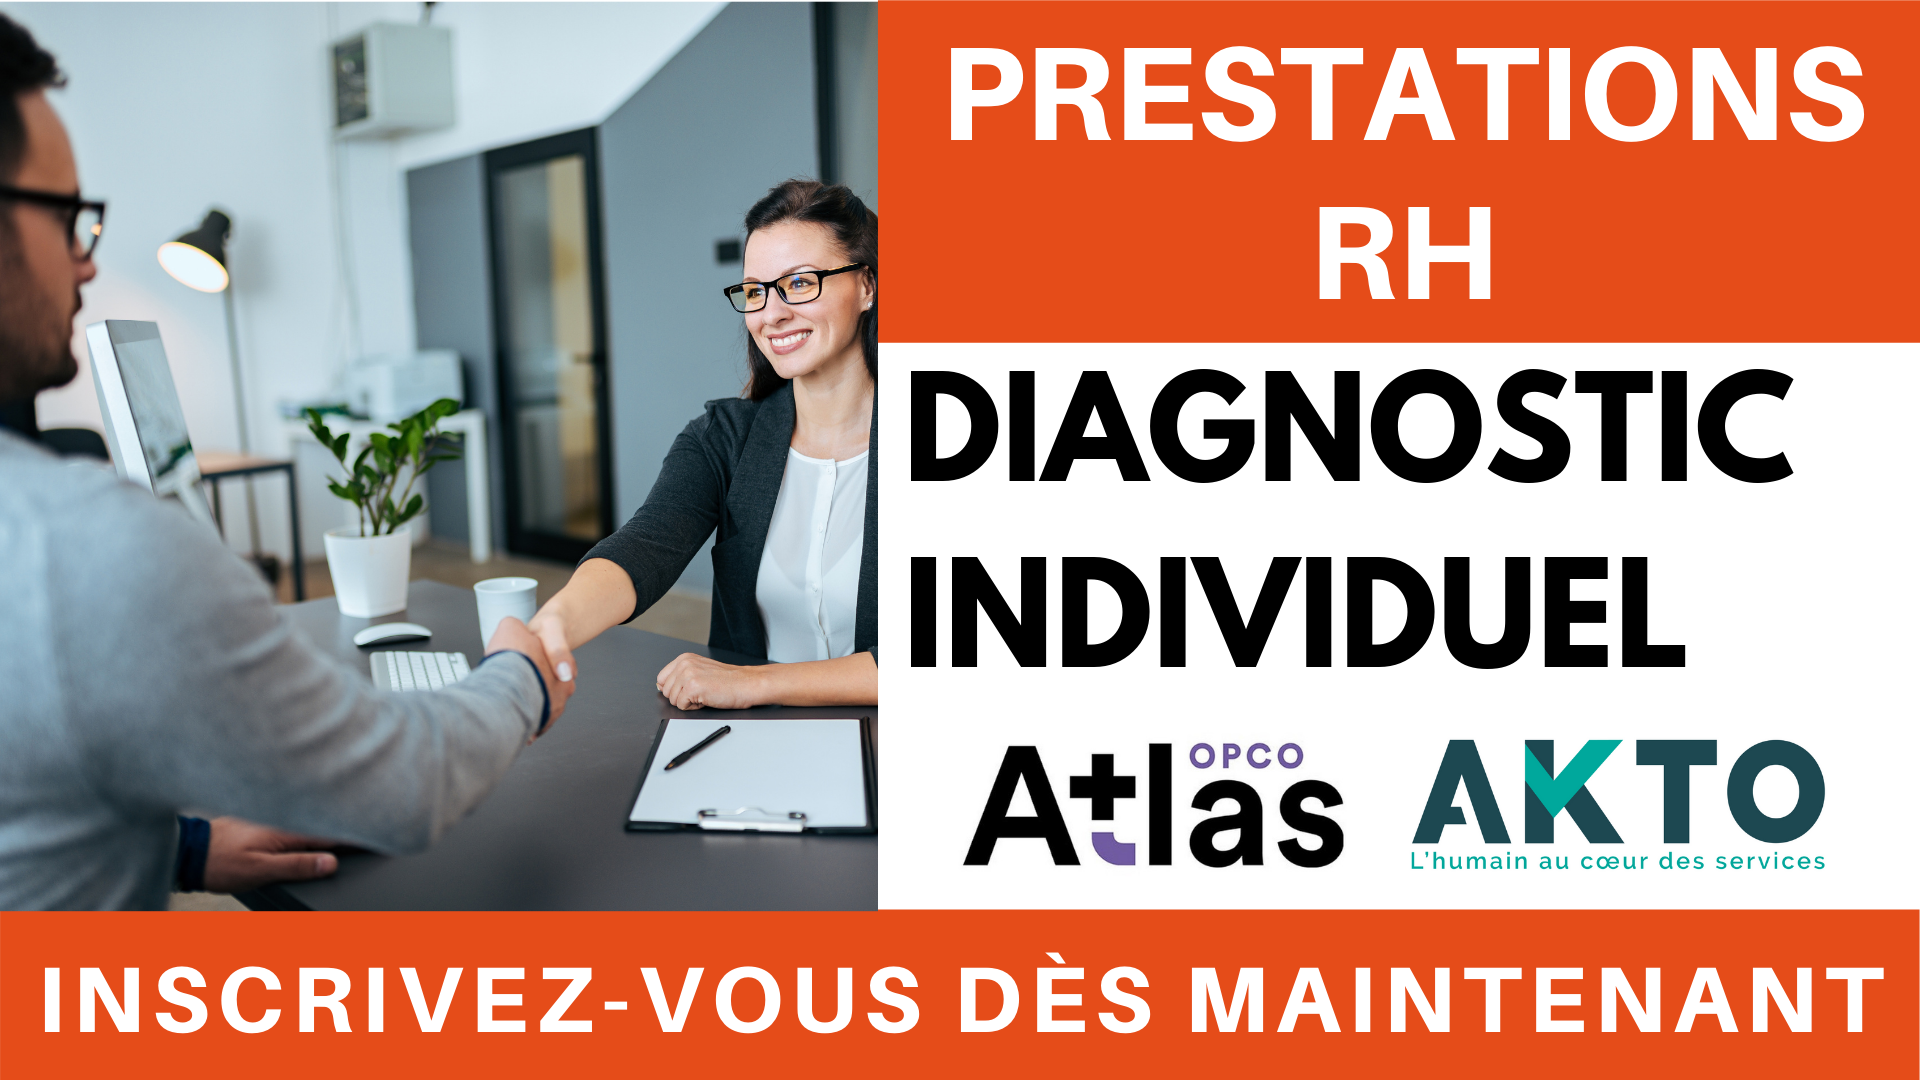 Prestations RH - Diagnostic individuel AKTO _ ATLAS